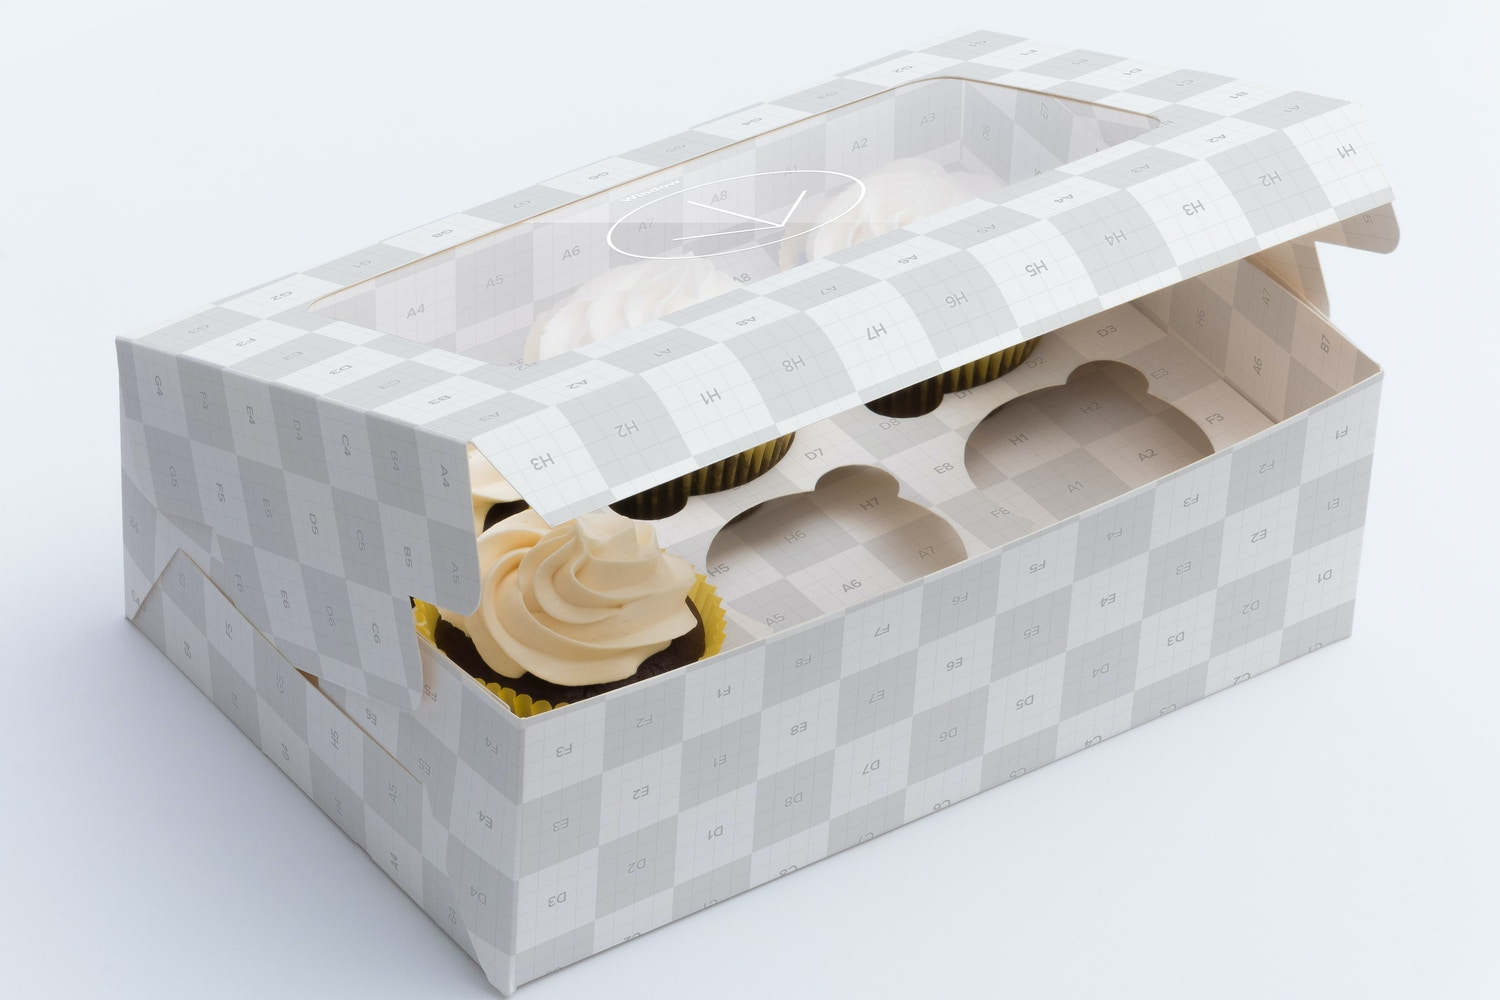 Six Cupcake Box Mockup 02 by Ktyellow  on Original Mockups